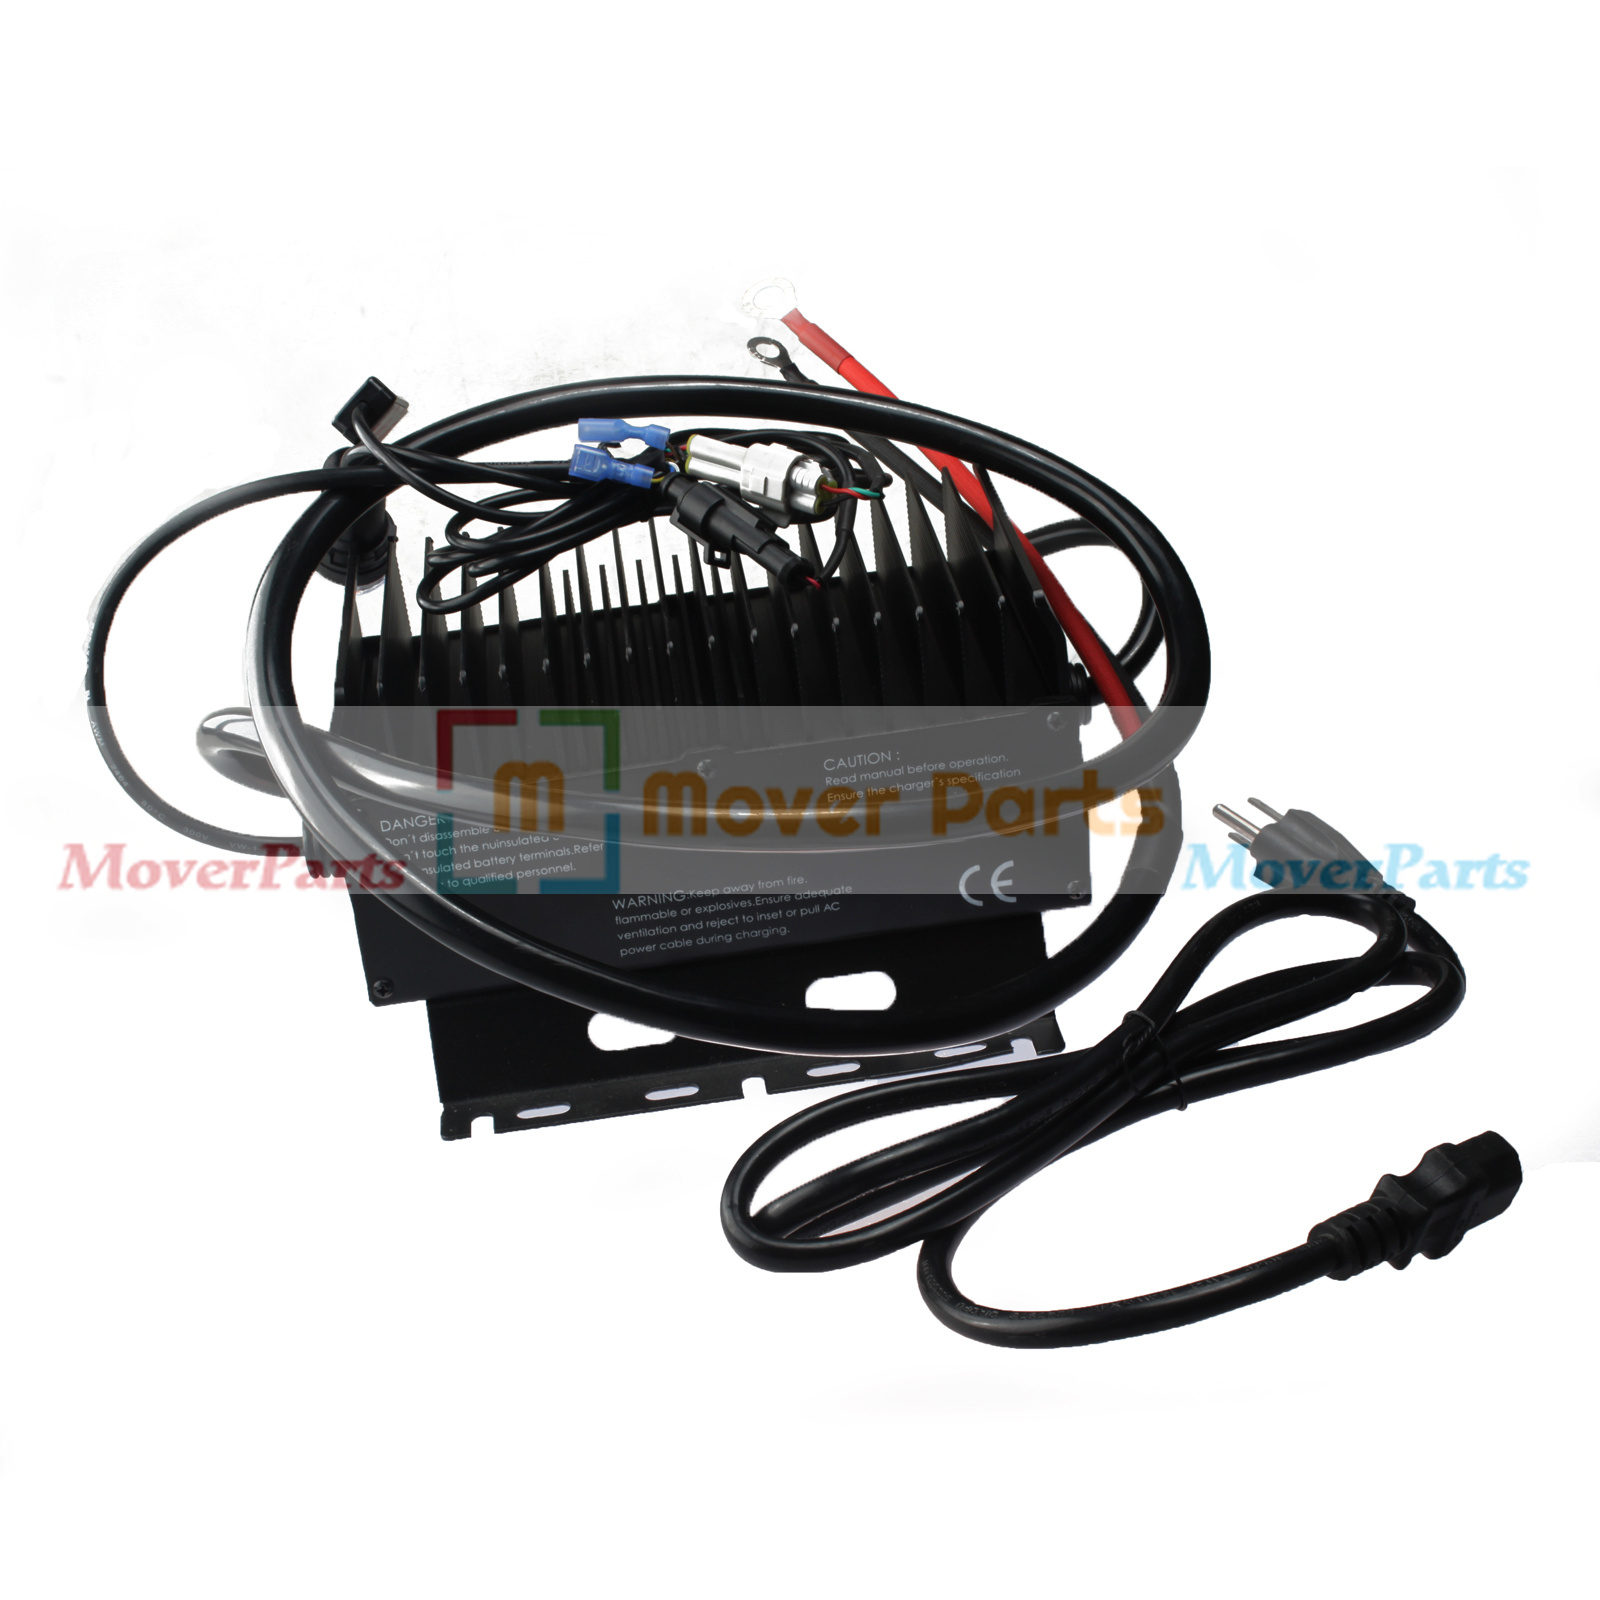 New 24V 25A Battery Charger 70789 for Marklift Scissor Lift